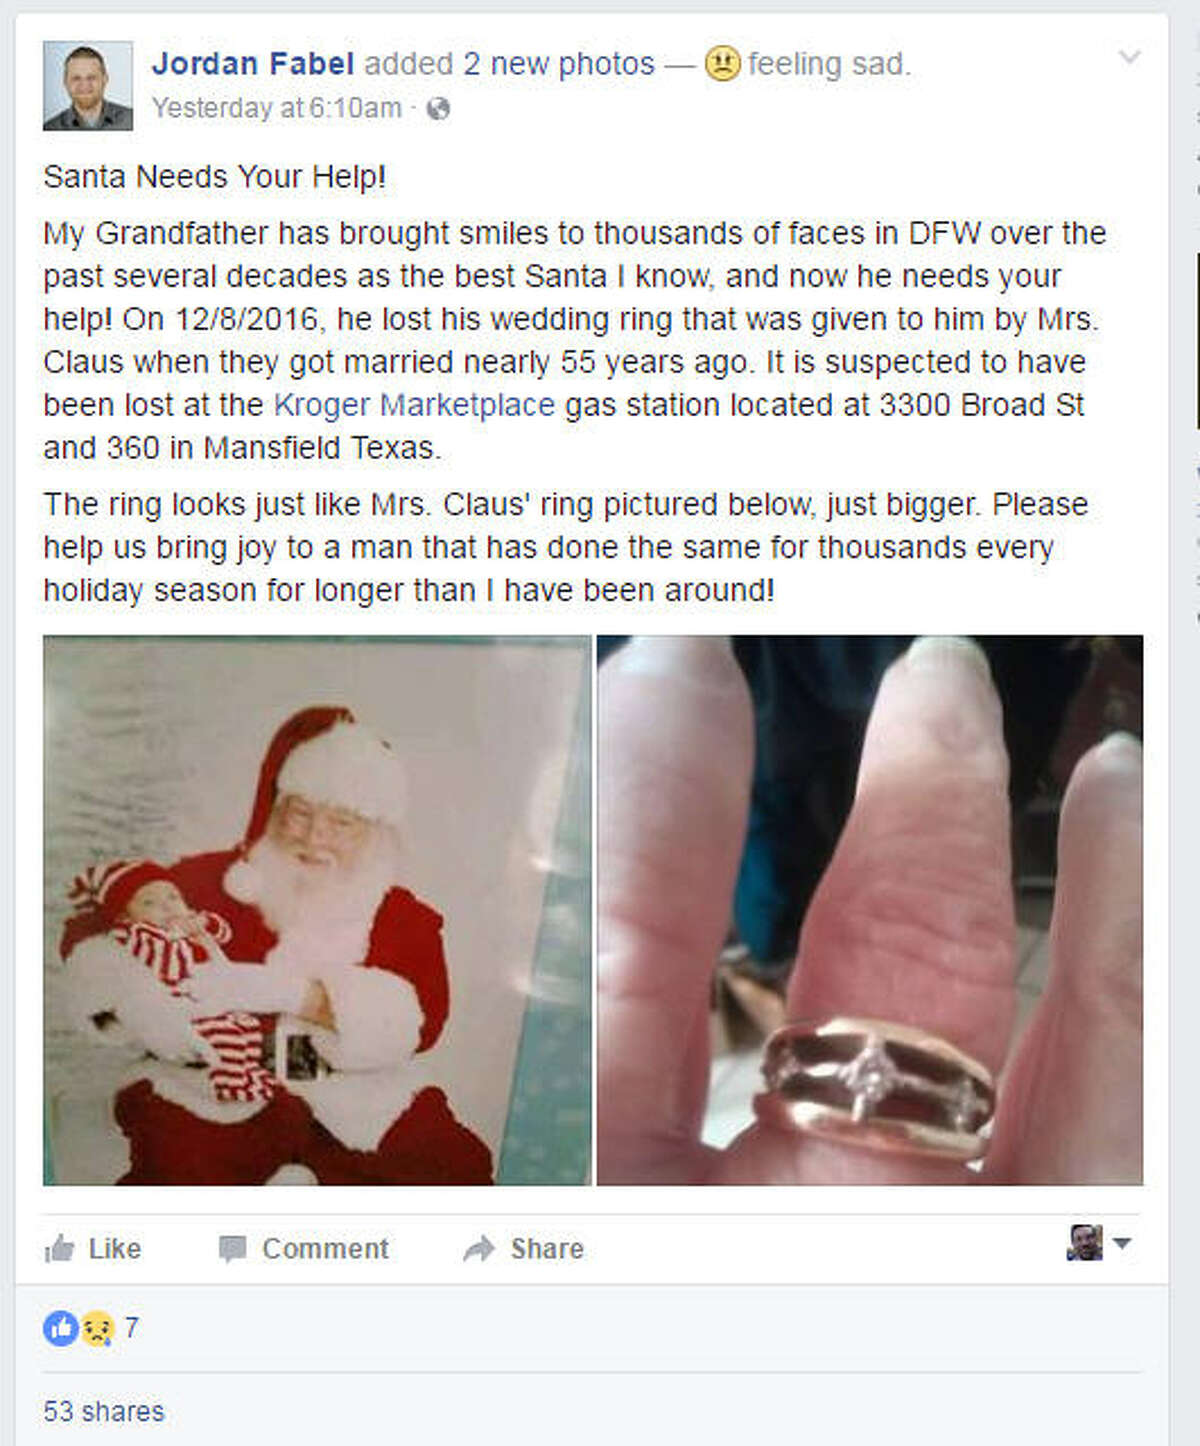 A Fort Worth, Texas, man has turned to Facebook to help his grandfather find a wedding ring he lost. Jordan Fabel's grandfather has played Santa Claus for years in the Dallas-Fort Worth area on Thursday, Dec. 8, 2016.